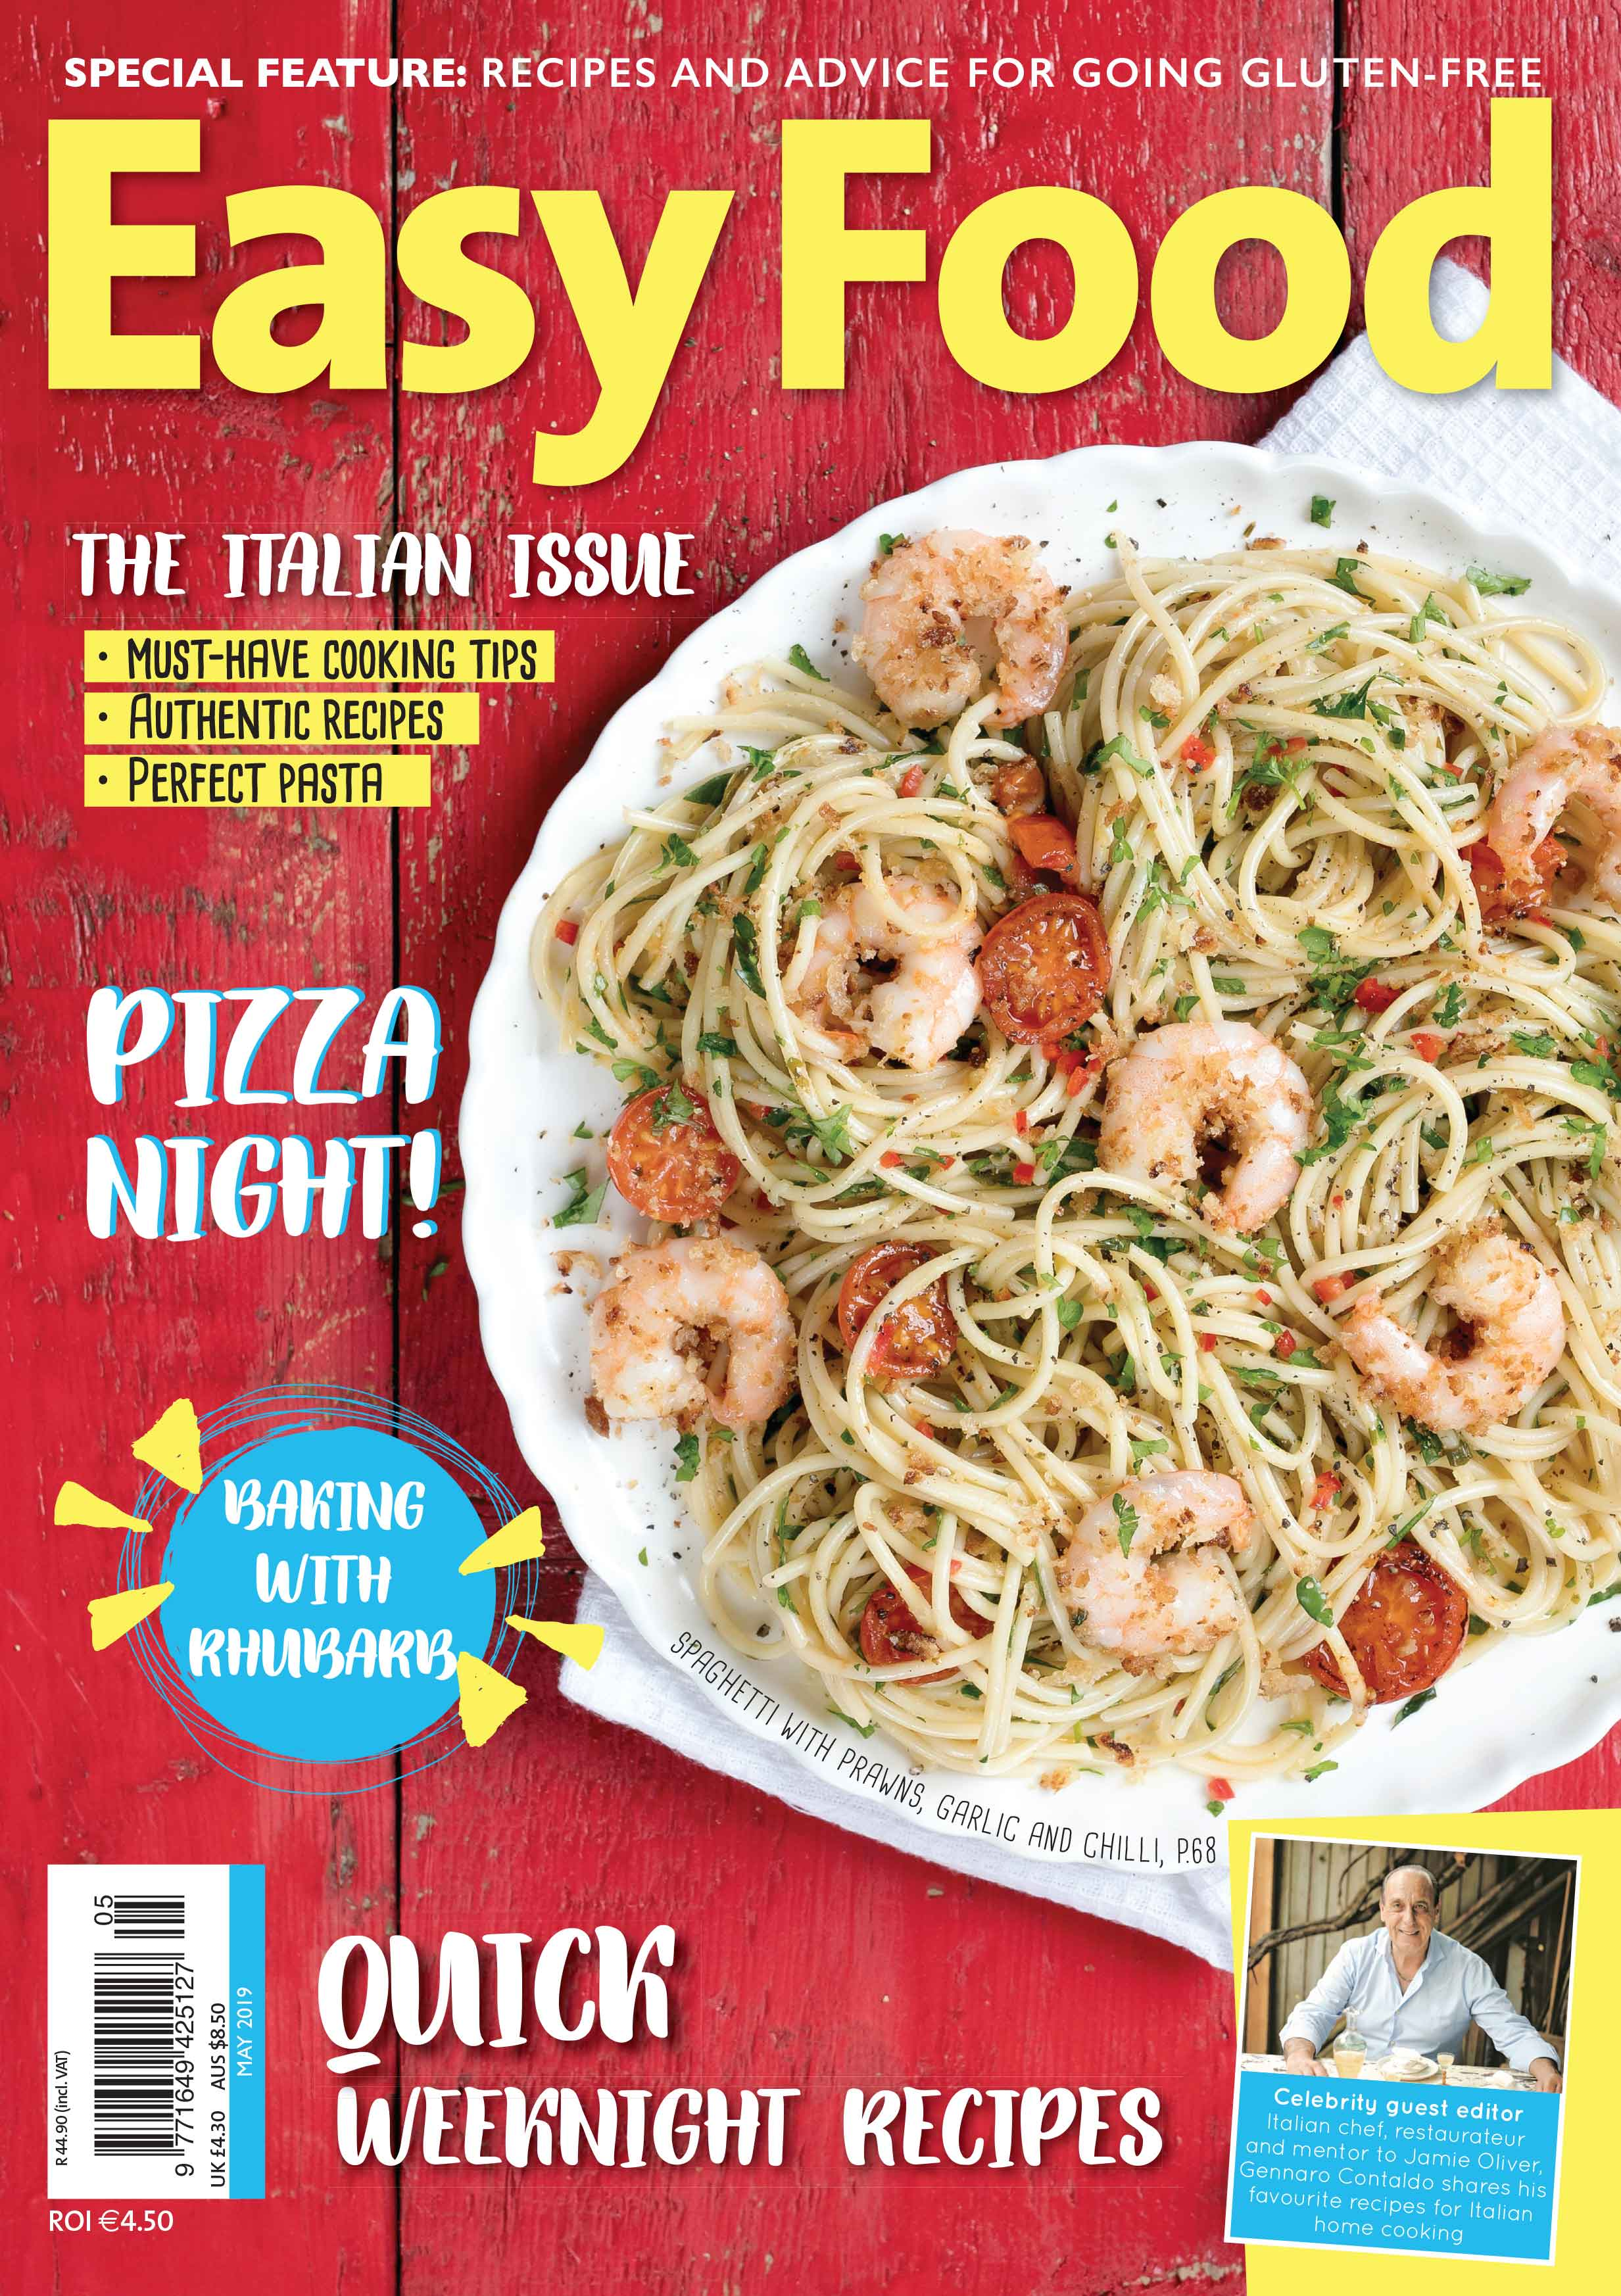 Easy Food issue 139 May 2019 out now new issue cover